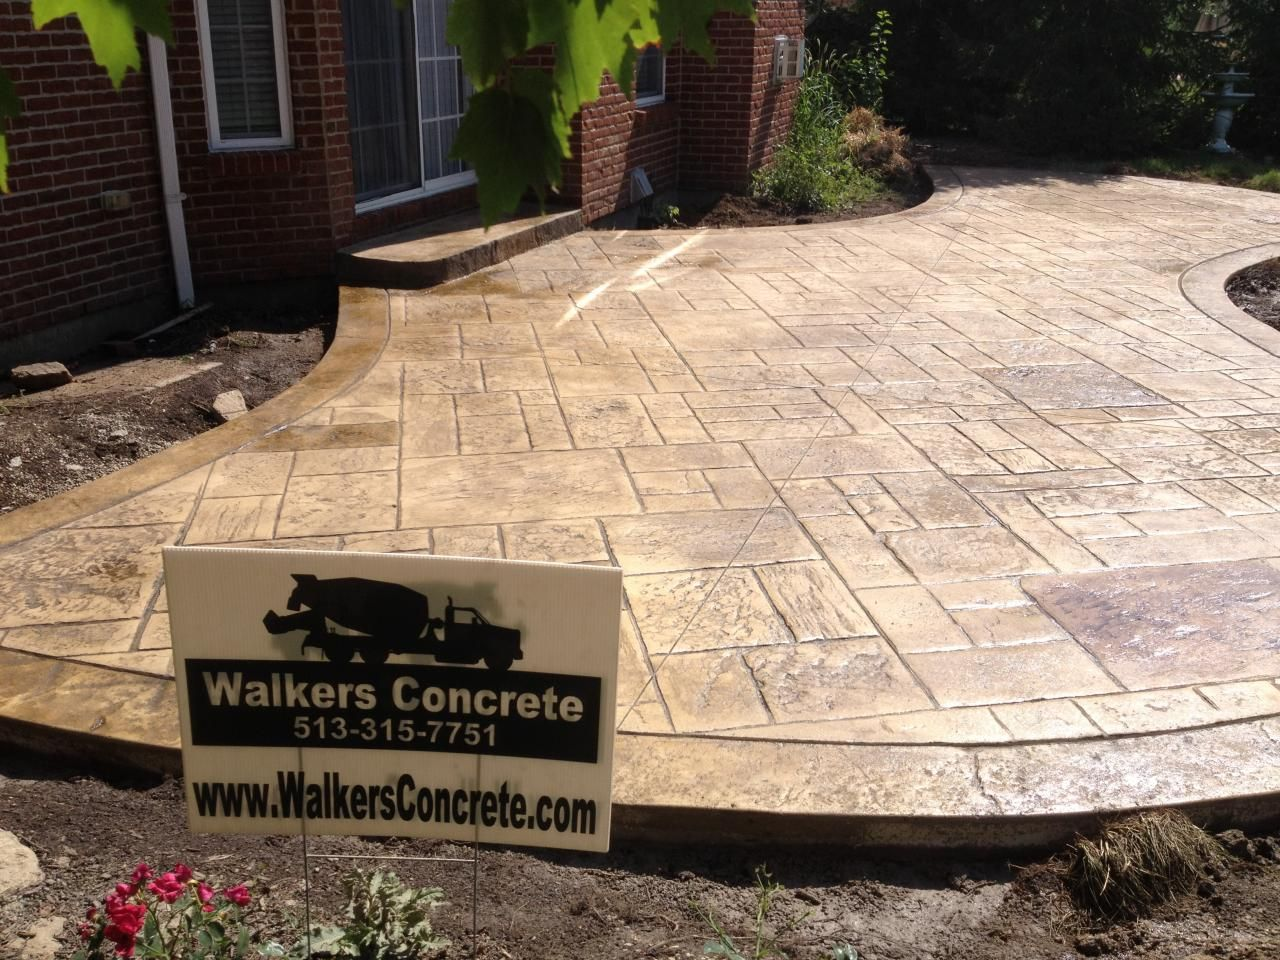 Concrete Backyard Landscaping Design stamped concrete patio designs | concrete llc - stamped concrete